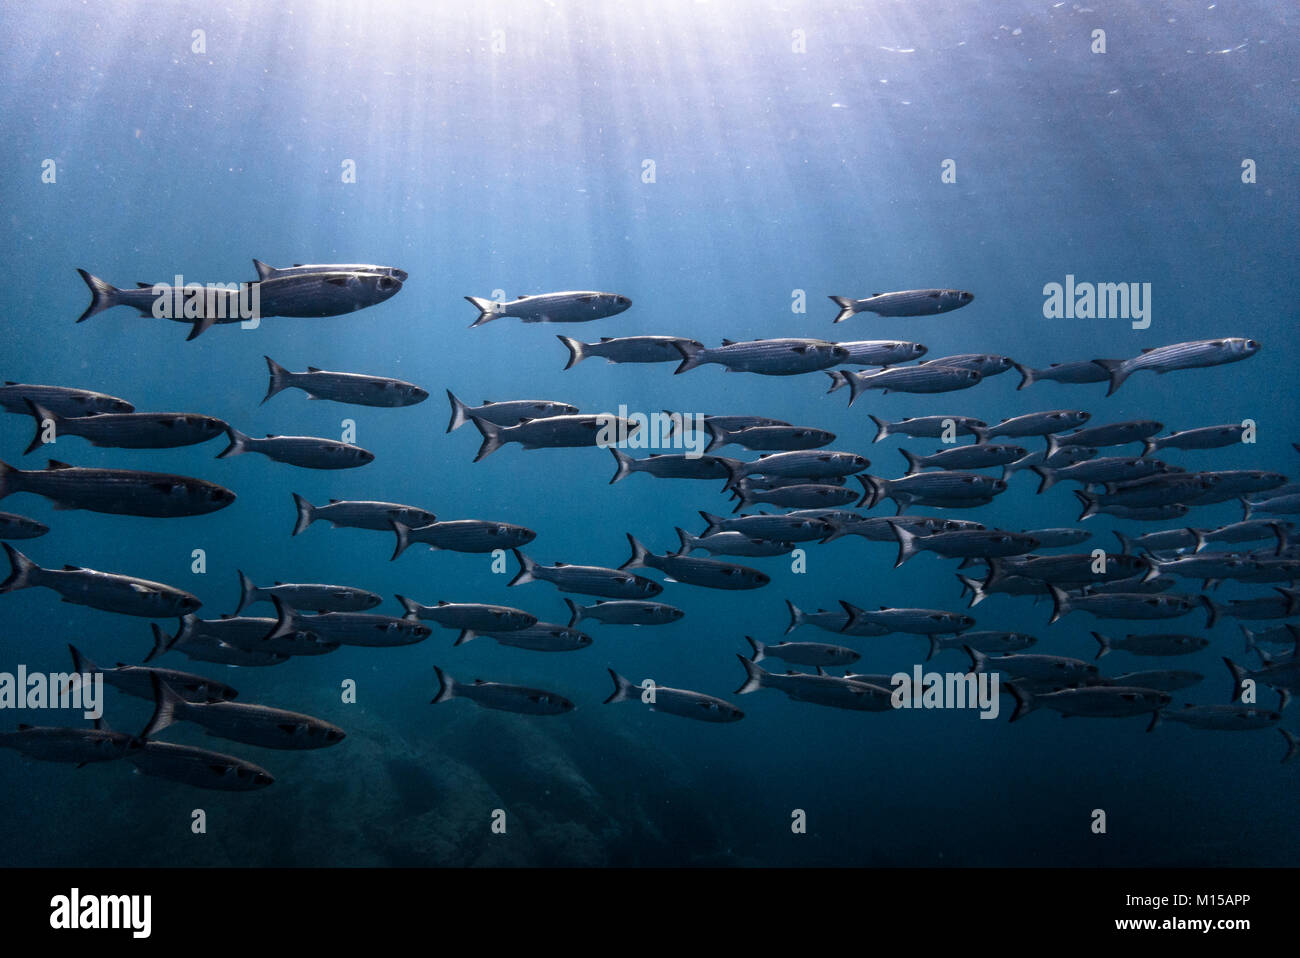 School of Mullet photographed in SE Brazil's island of Ilhabela. - Stock Image